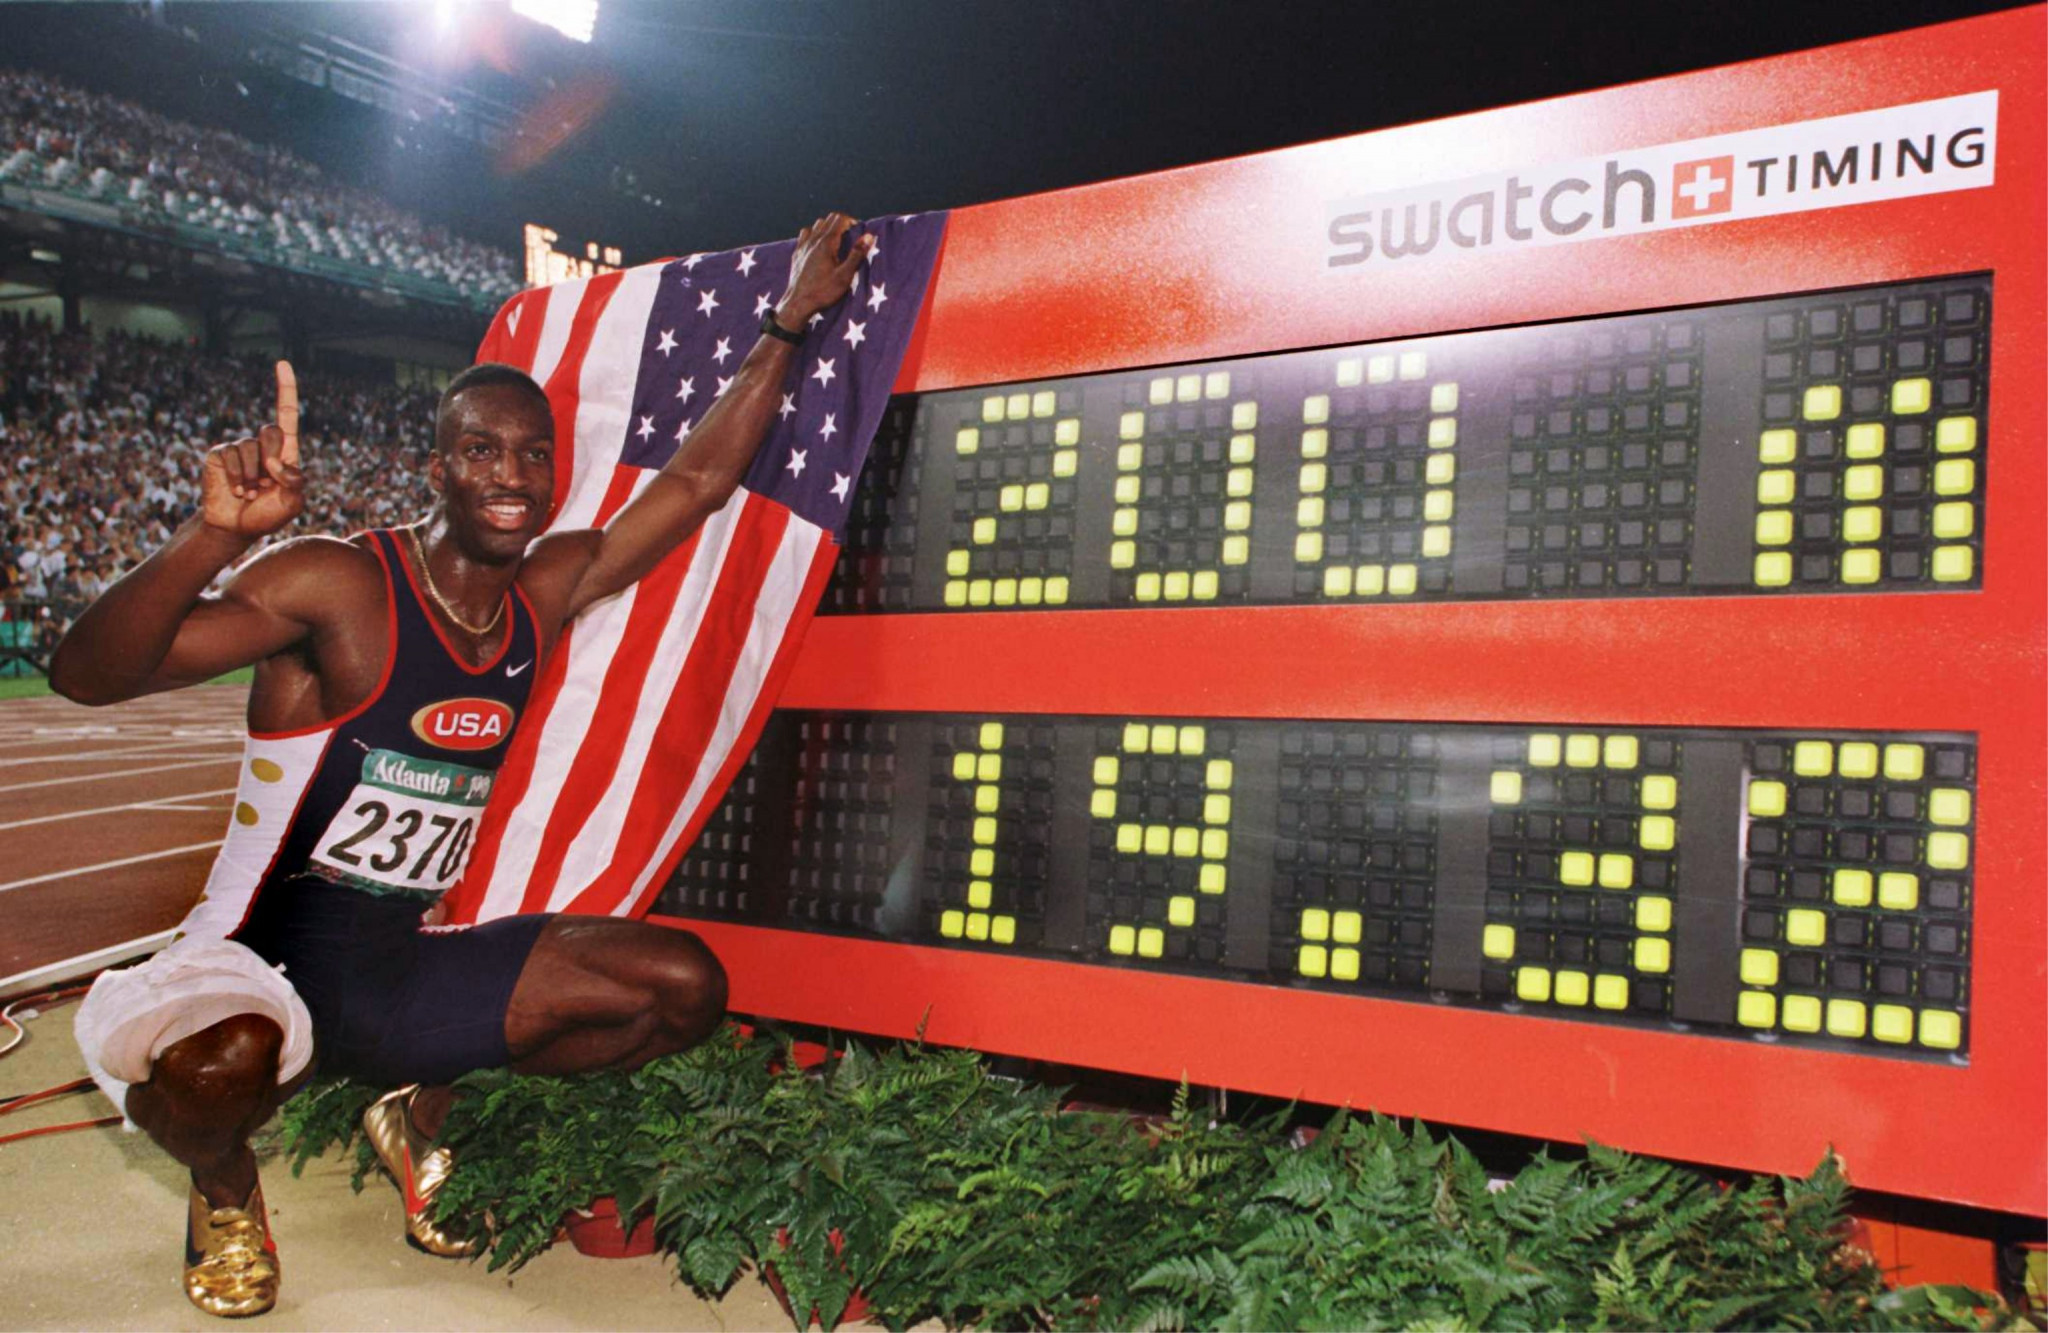 Michael Johnson set a 200m world record at Atlanta 1996 which stood for 12 years ©Getty Images